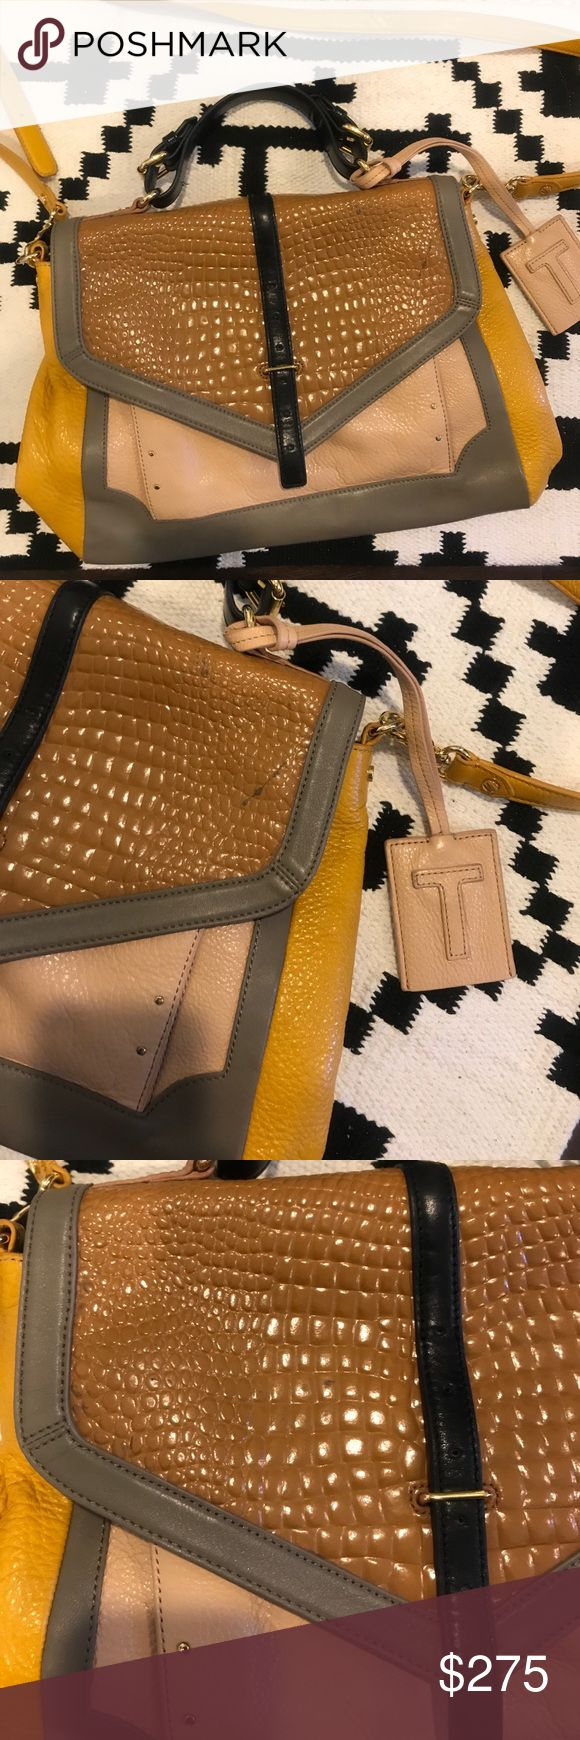 Tory Burch leather color block satchel purse Large size bag- great fall colors! A few small blemishes on the flap. See all pictures before purchasing! Multiple pockets and build in mirror. From Being Be blog. No trades. Tory Burch Bags Satchels